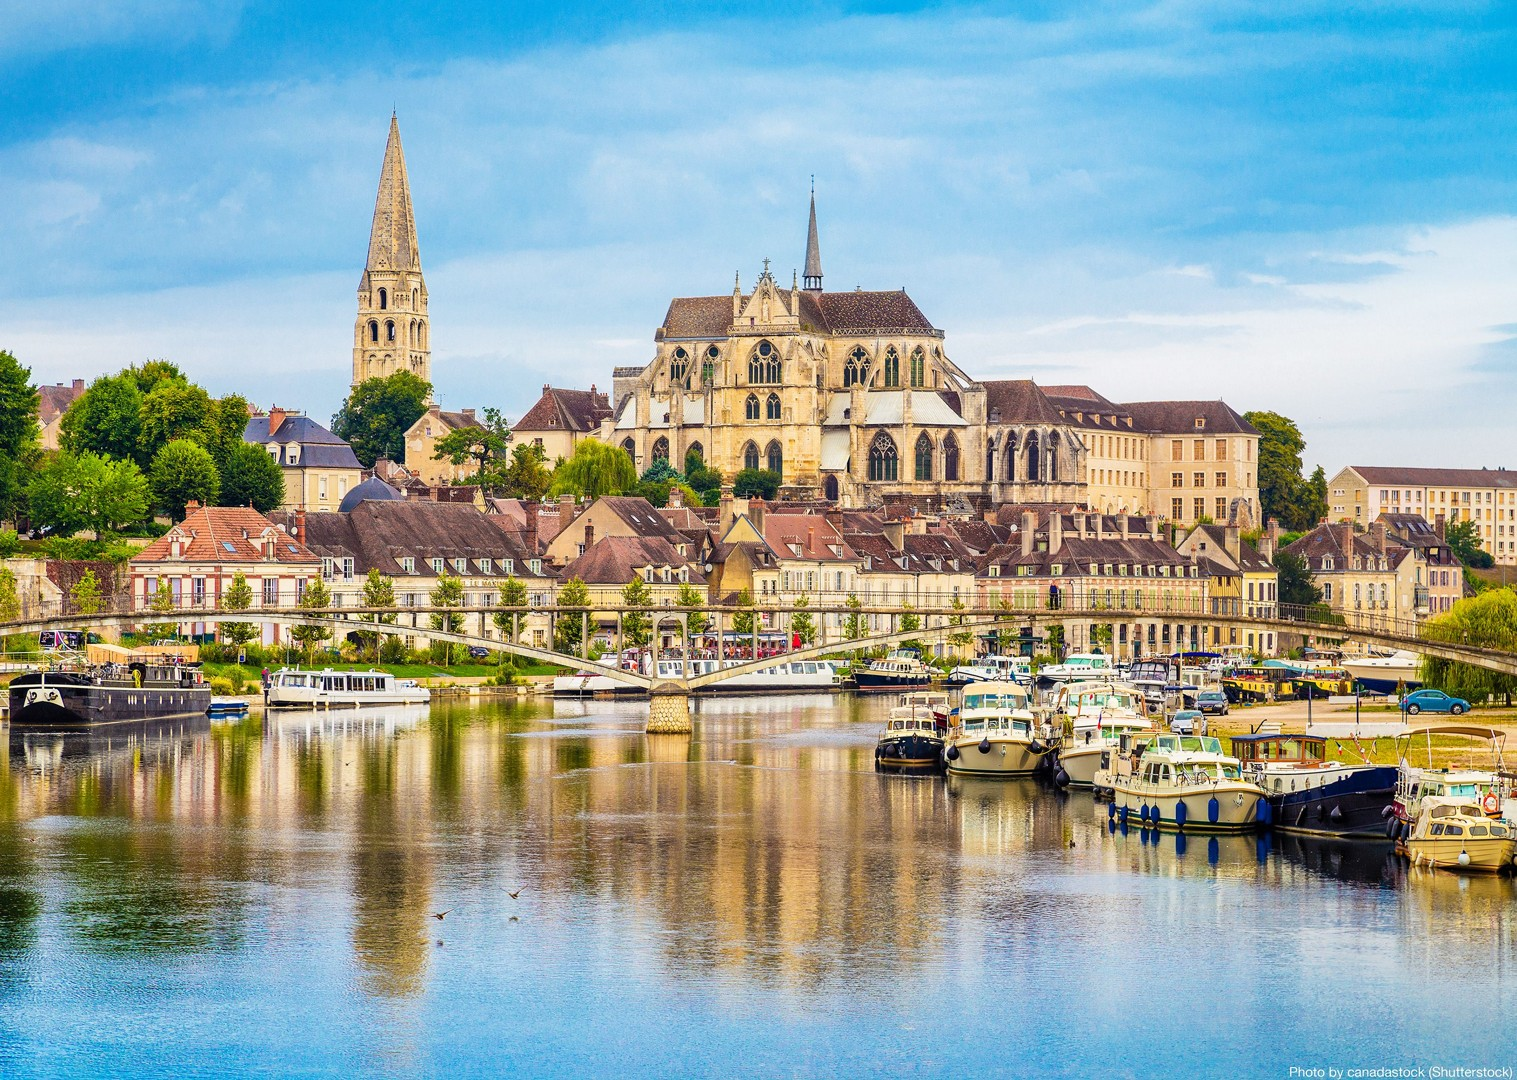 france-burgundy-caves-and-canals-self-guided-leisure-cycling-holiday.jpg - France - Burgundy - Caves and Canals - Self-Guided Leisure Cycling Holiday - Leisure Cycling